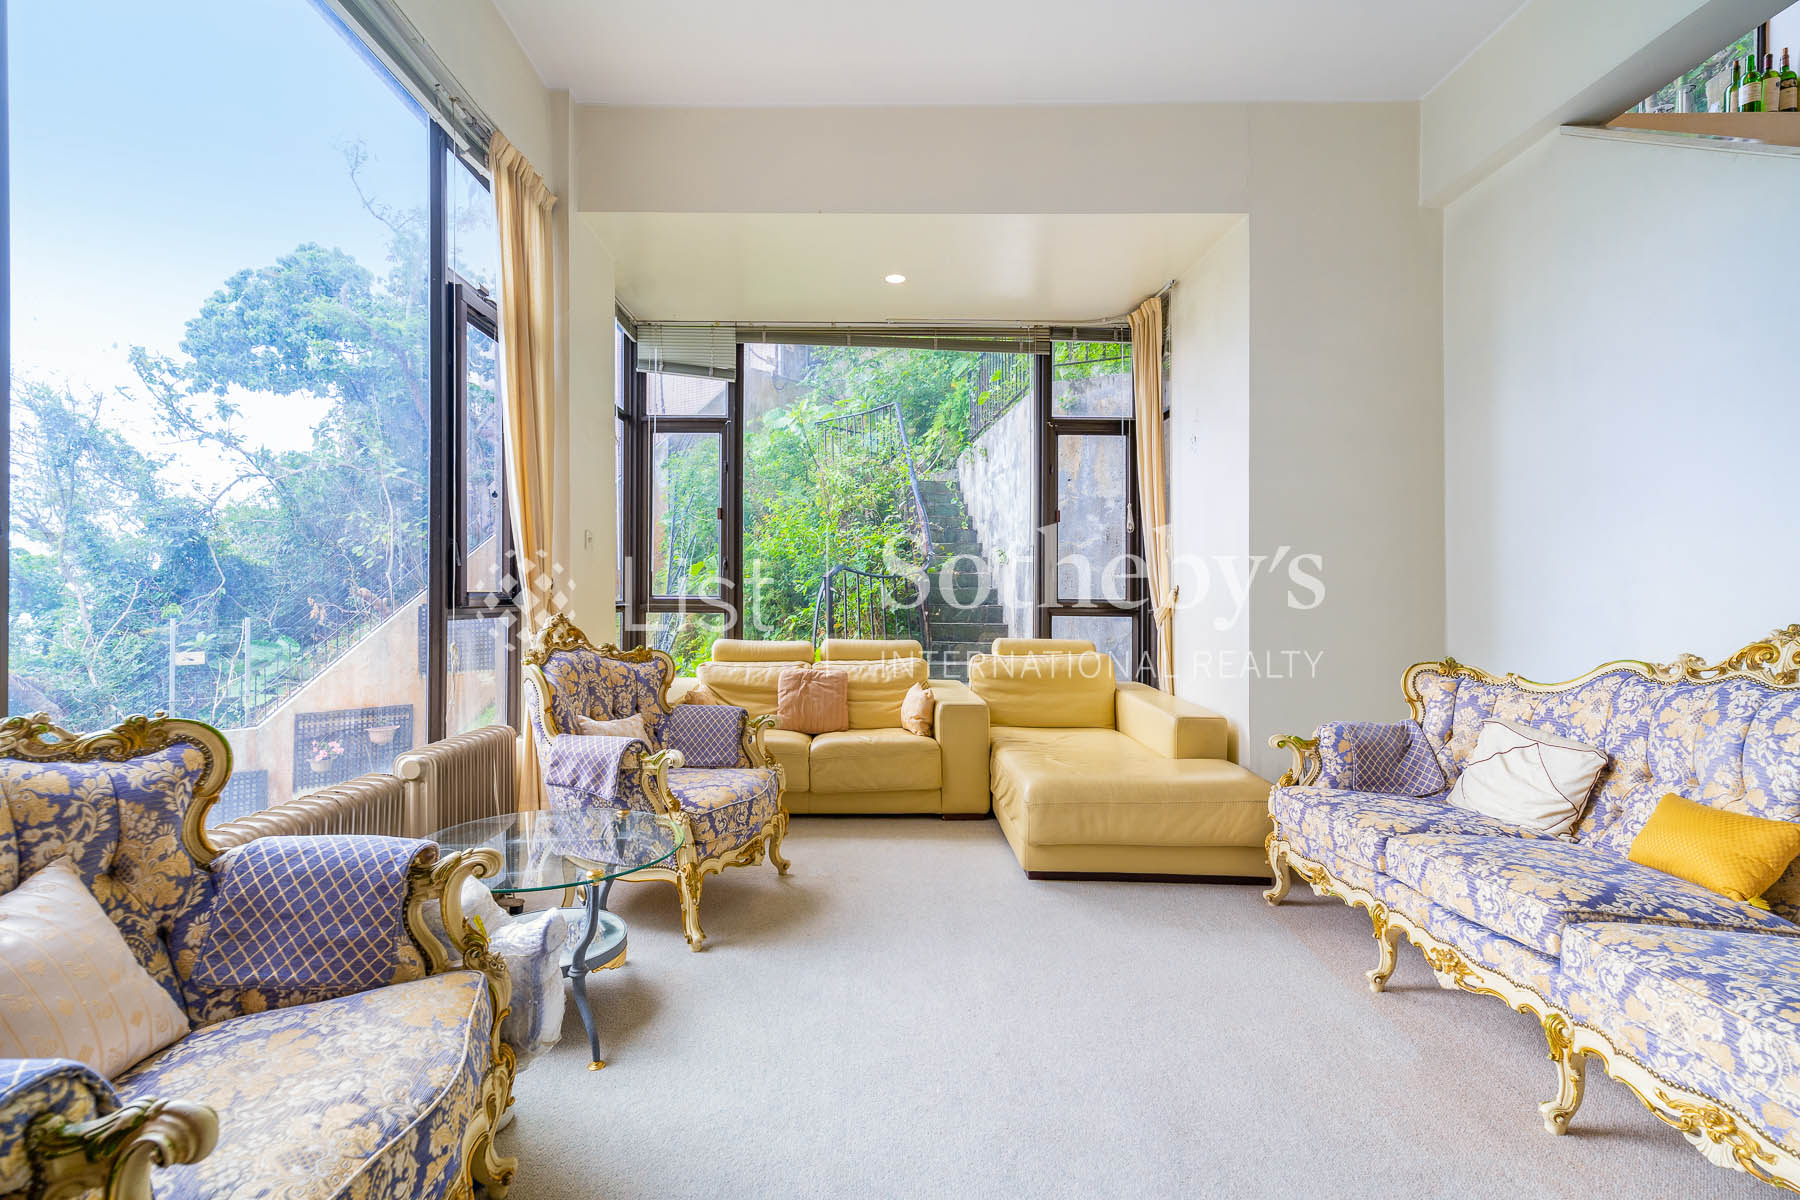 Townhouse for Sale at [Sole Agent] The Beachfront Repulse Bay, Hong Kong Hong Kong